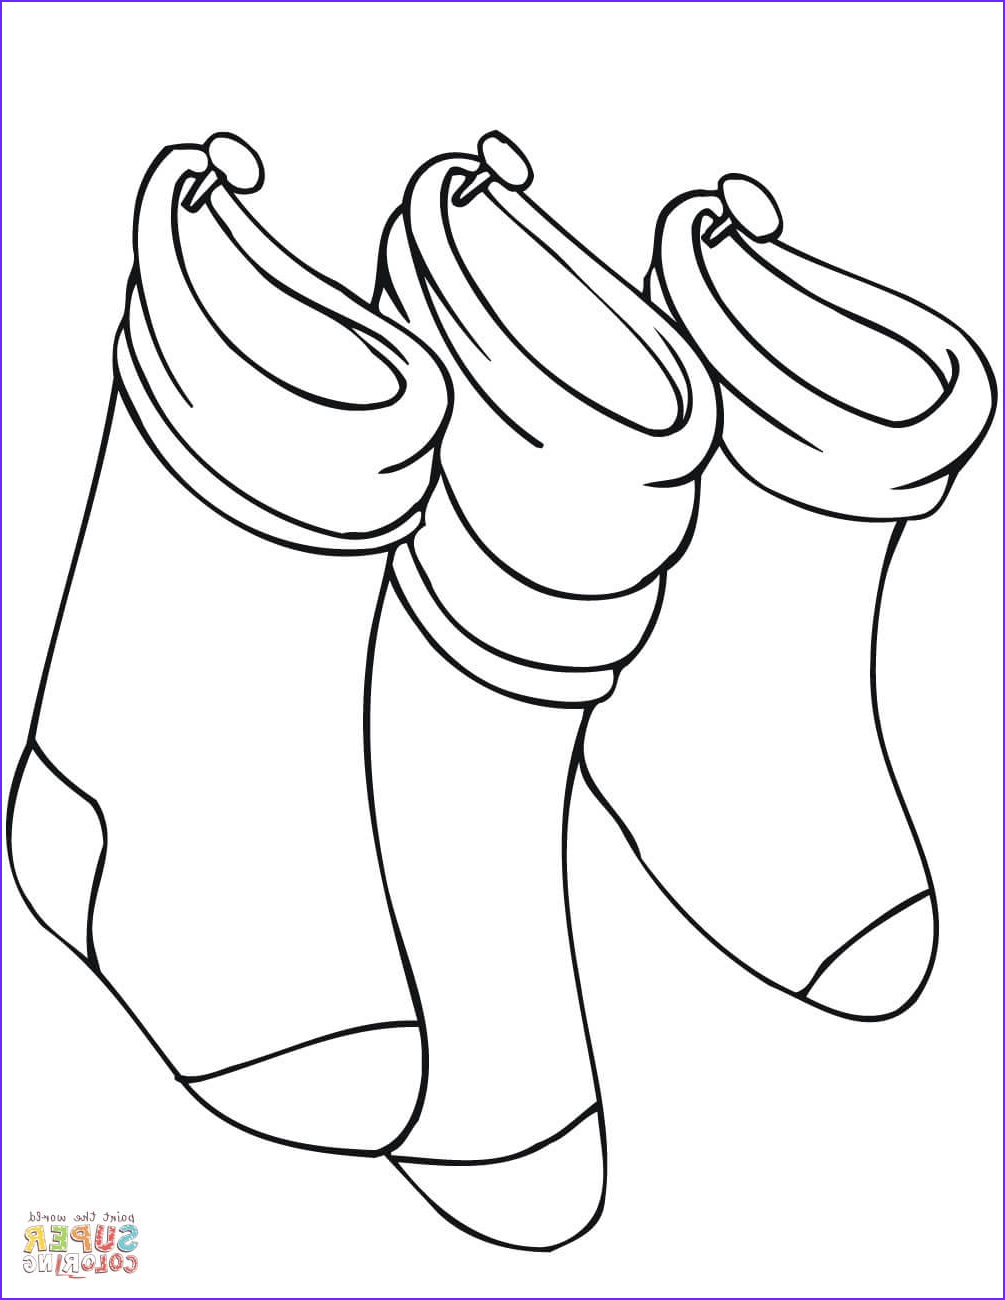 Socks Coloring New Stock sock Coloring Page at Getcolorings